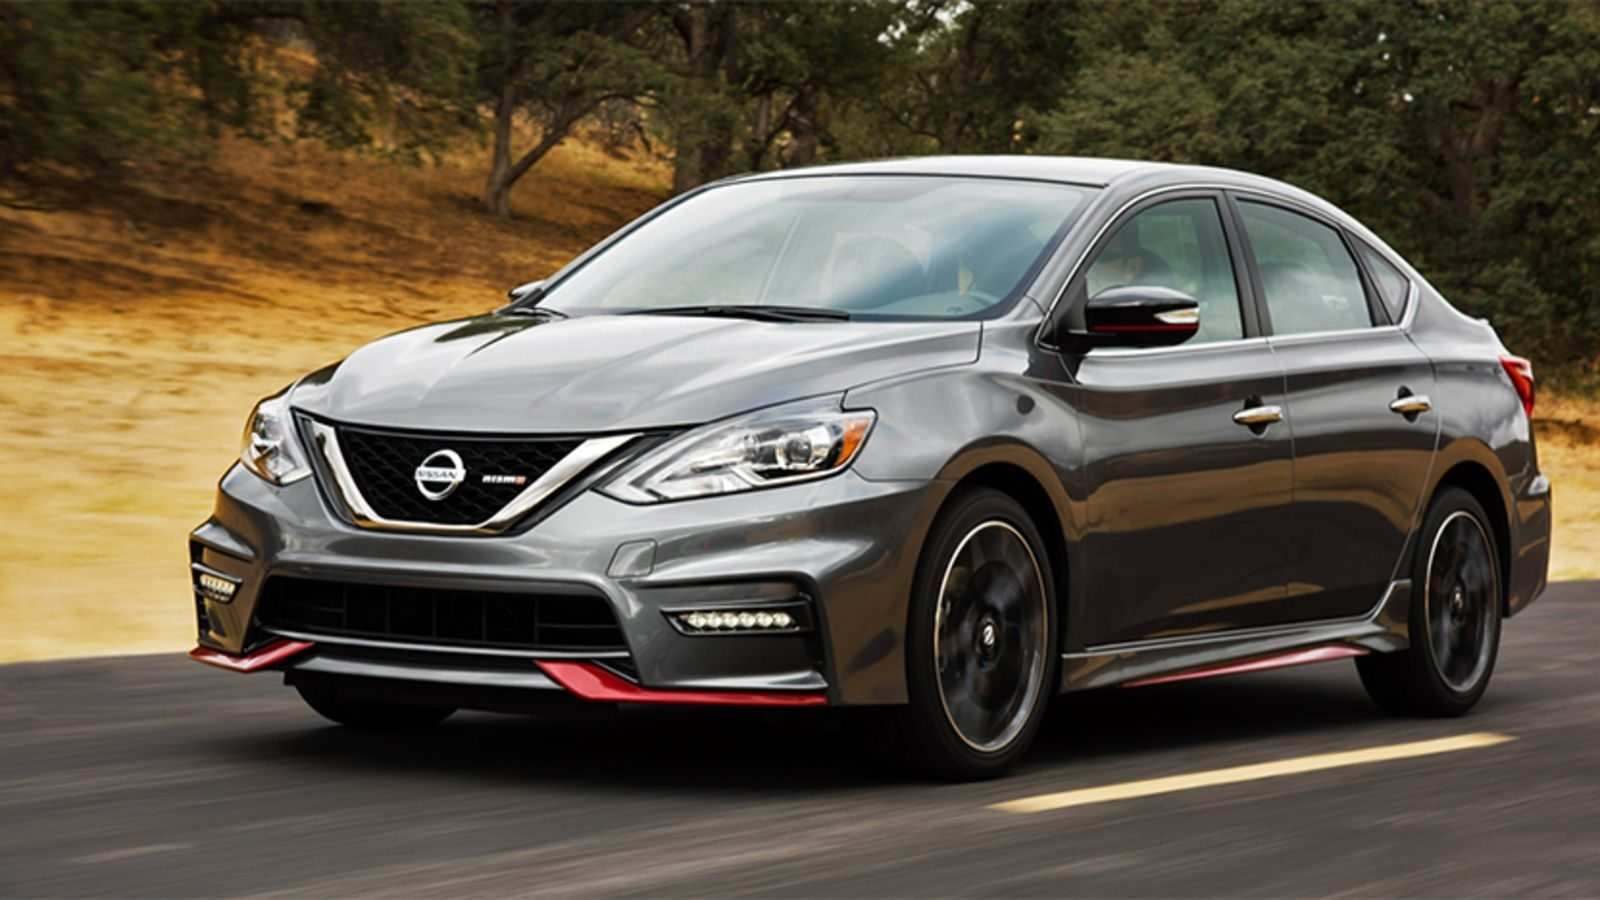 61 New Nissan Sentra 2020 Release Date Redesign and Concept with Nissan Sentra 2020 Release Date